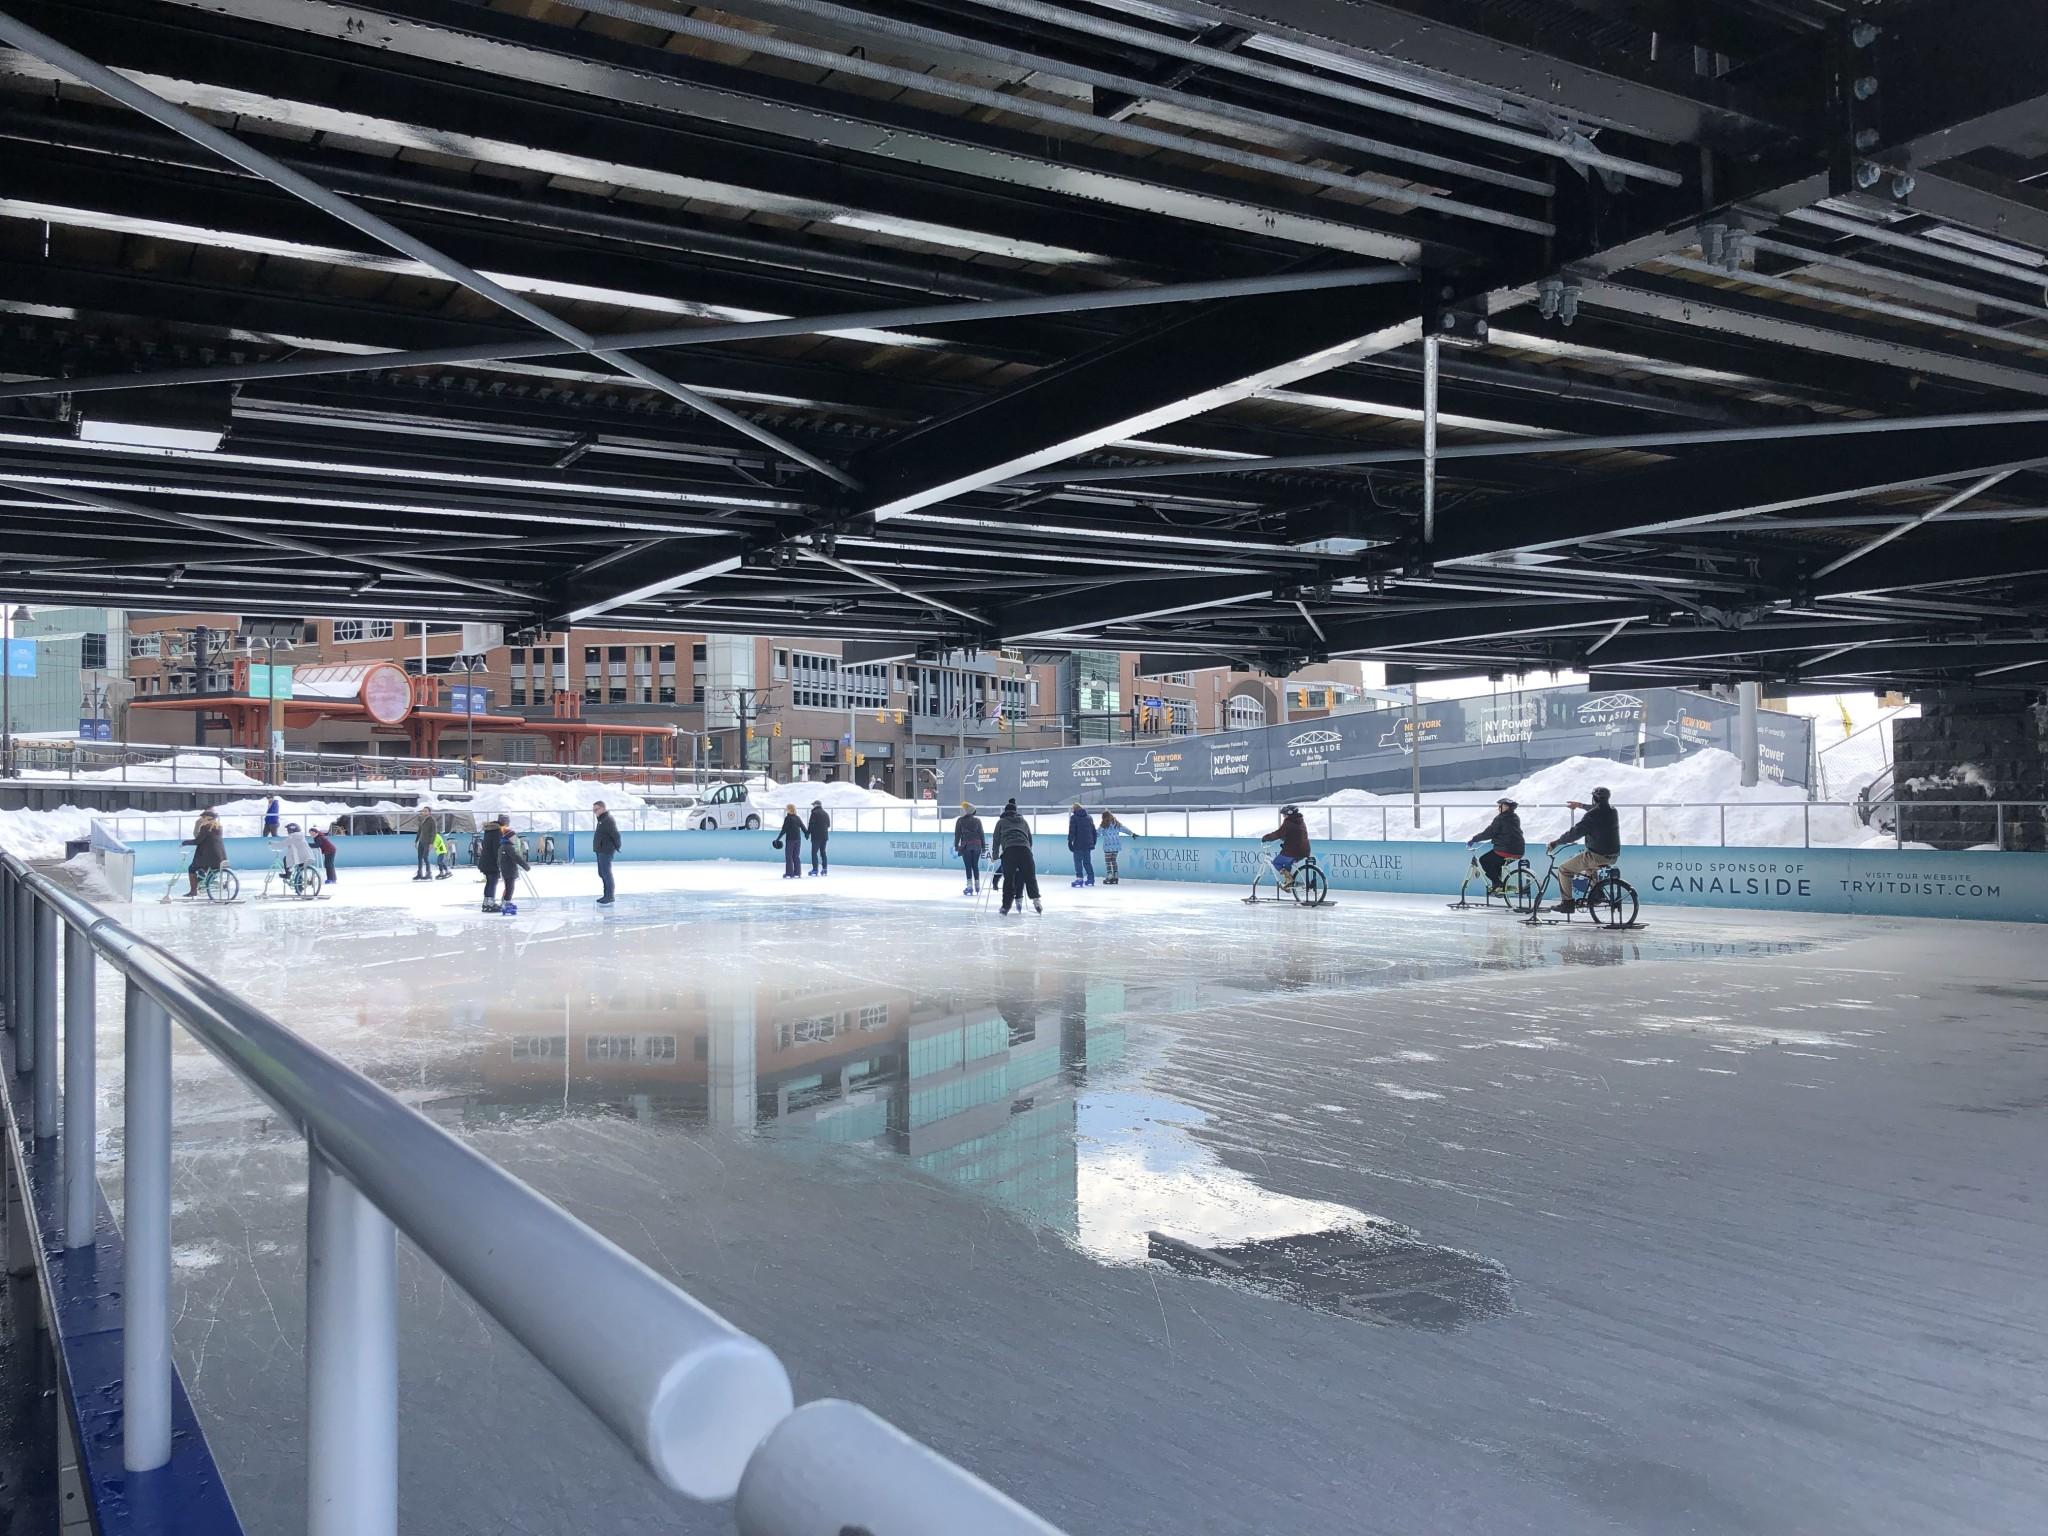 Canalside ice skating: My favorite thing in downtown Buffalo, New York